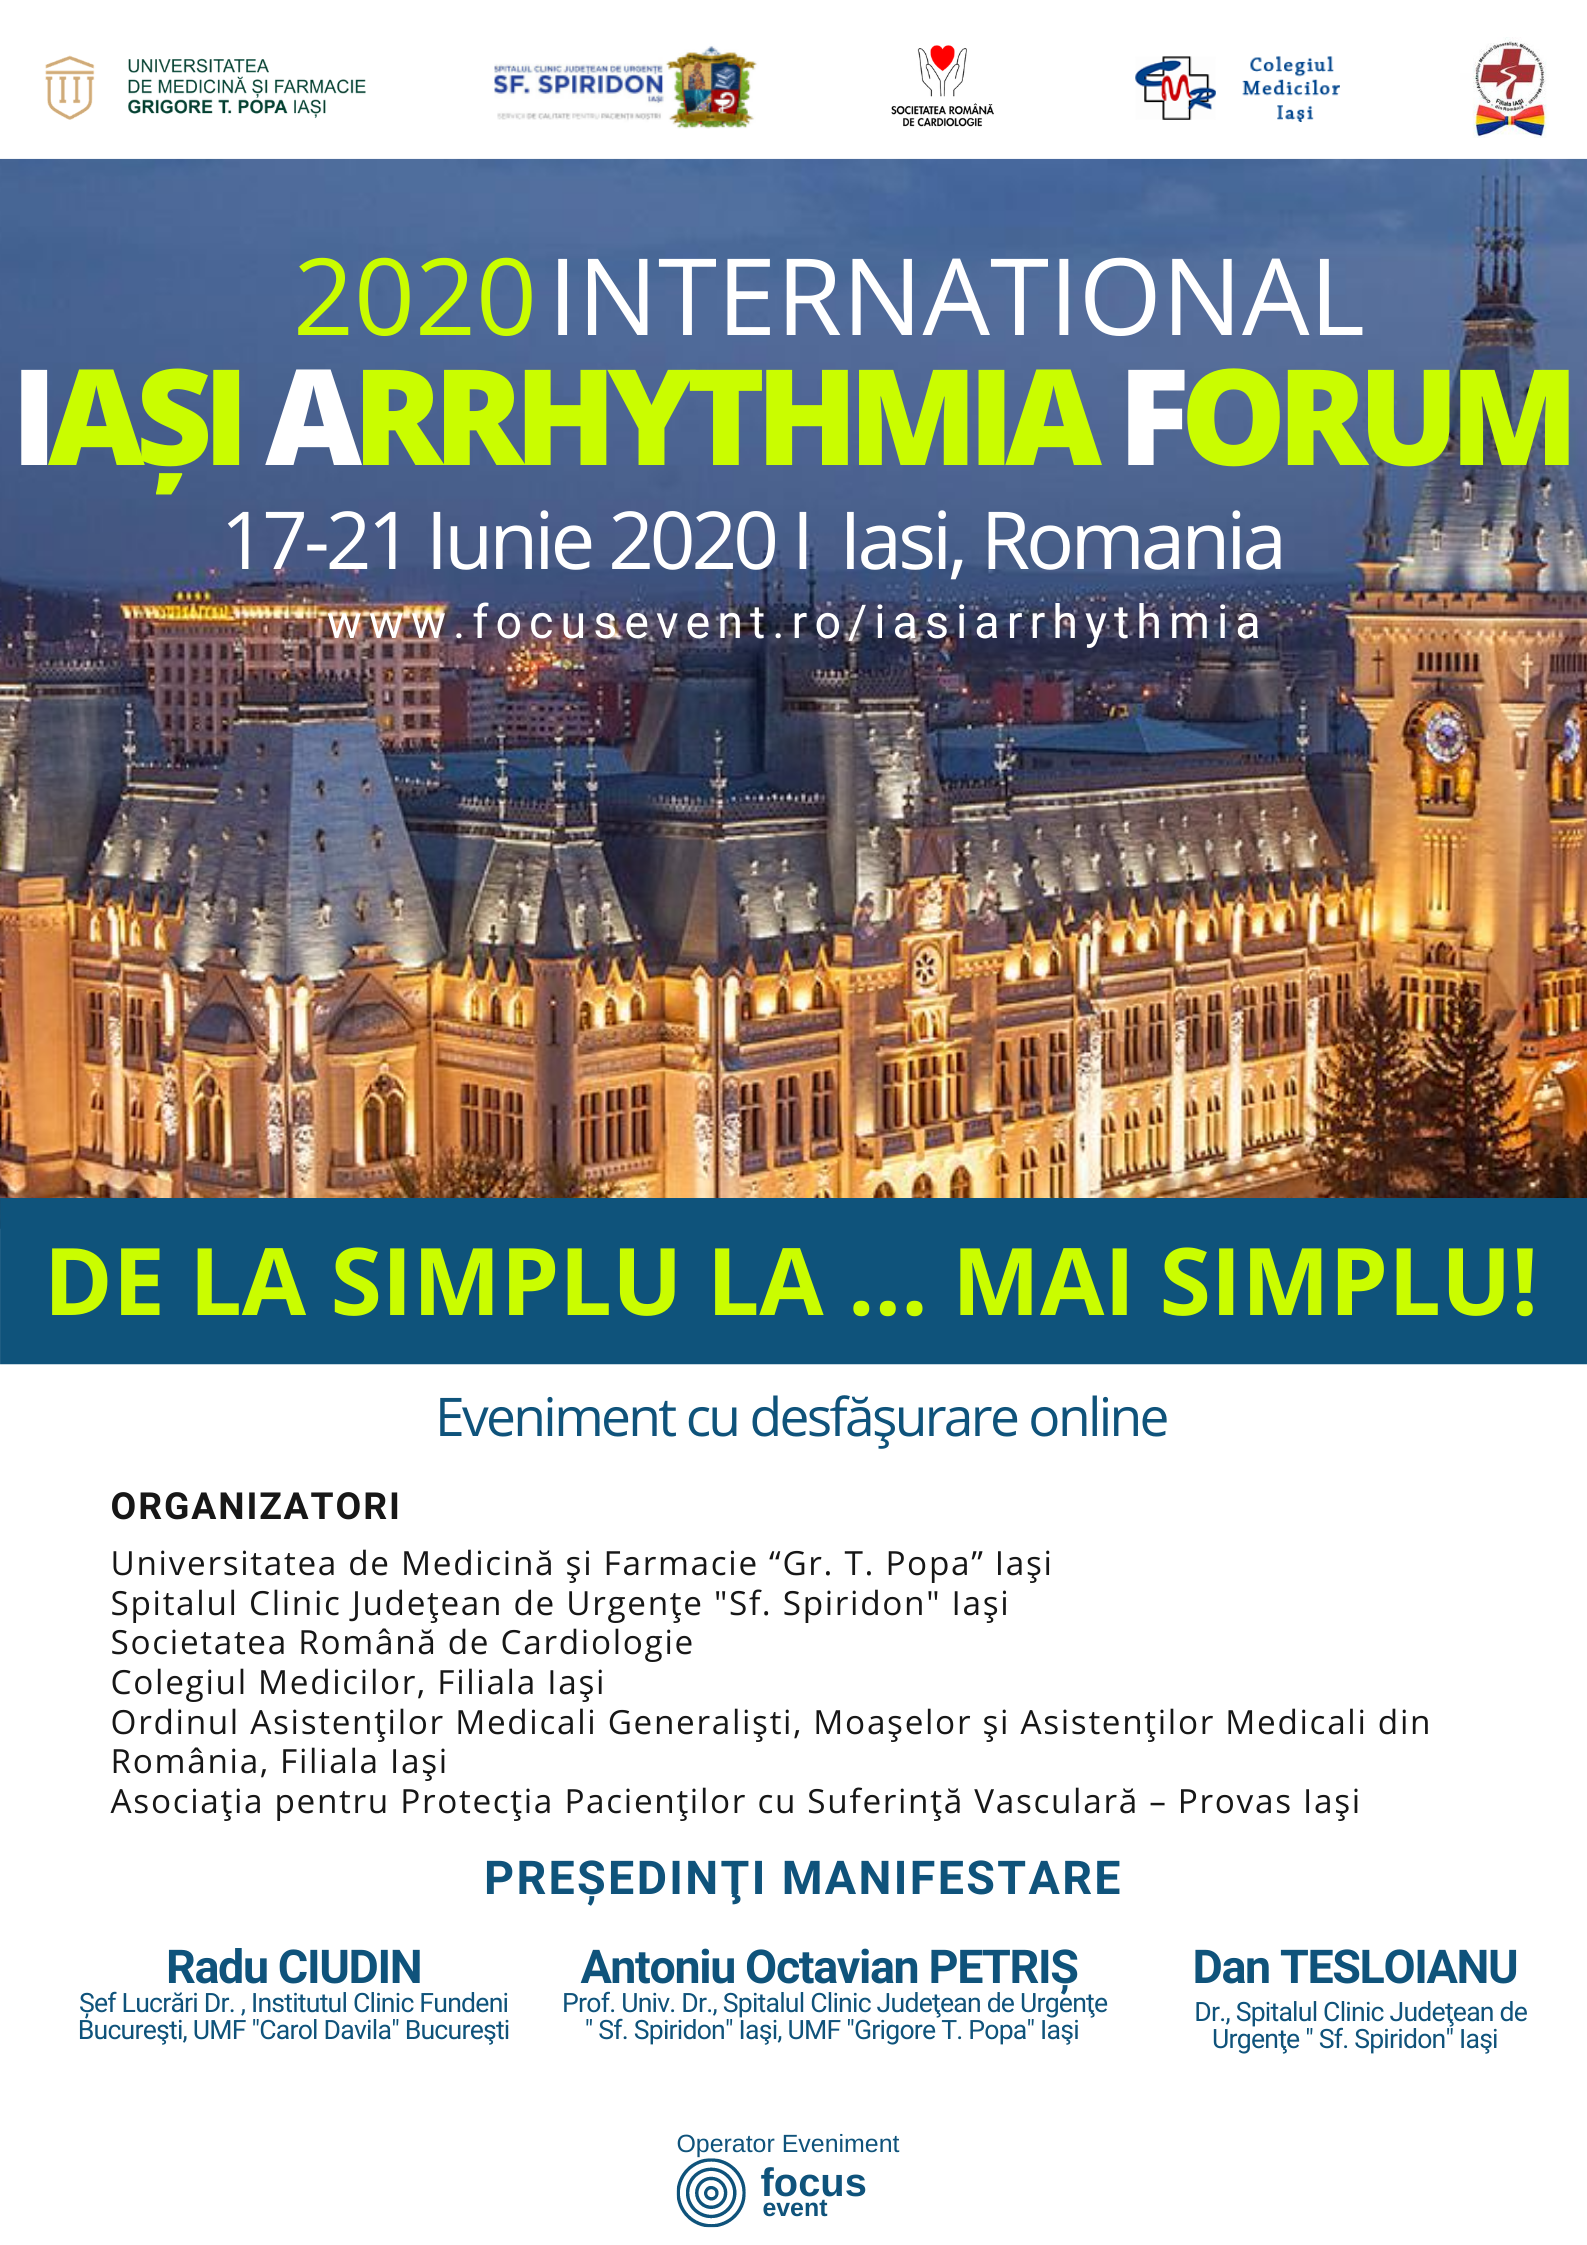 A2 International AFIS IASI ARRHYTHMIA FORUM 2020